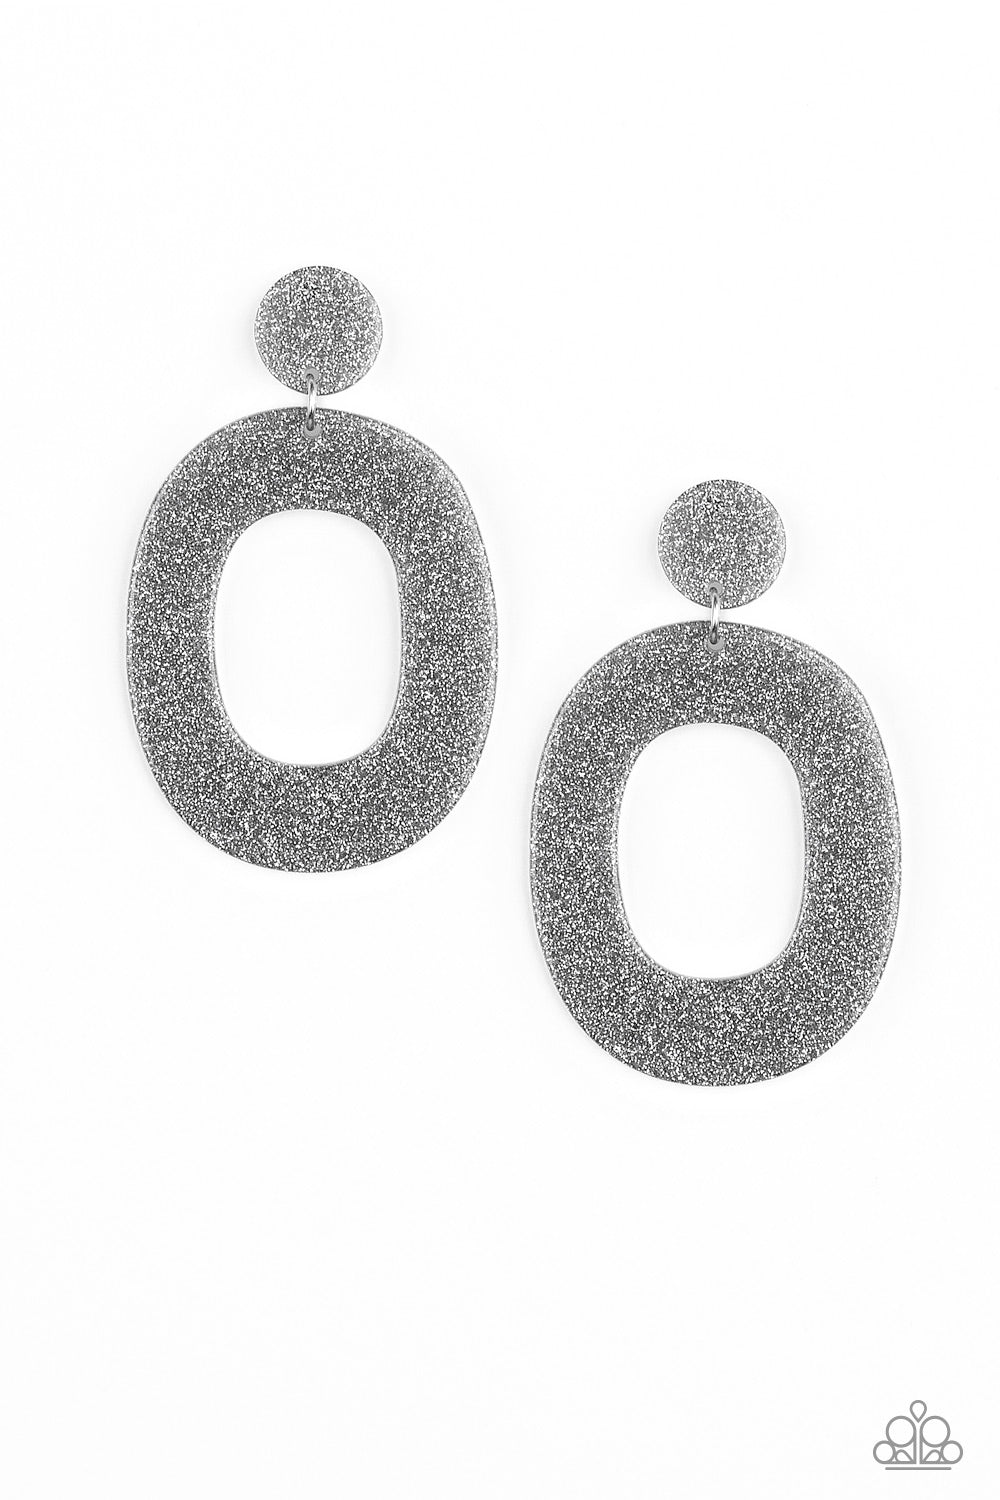 Paparazzi Accessories Miami Boulevard - Silver Earring - Be Adored Jewelry